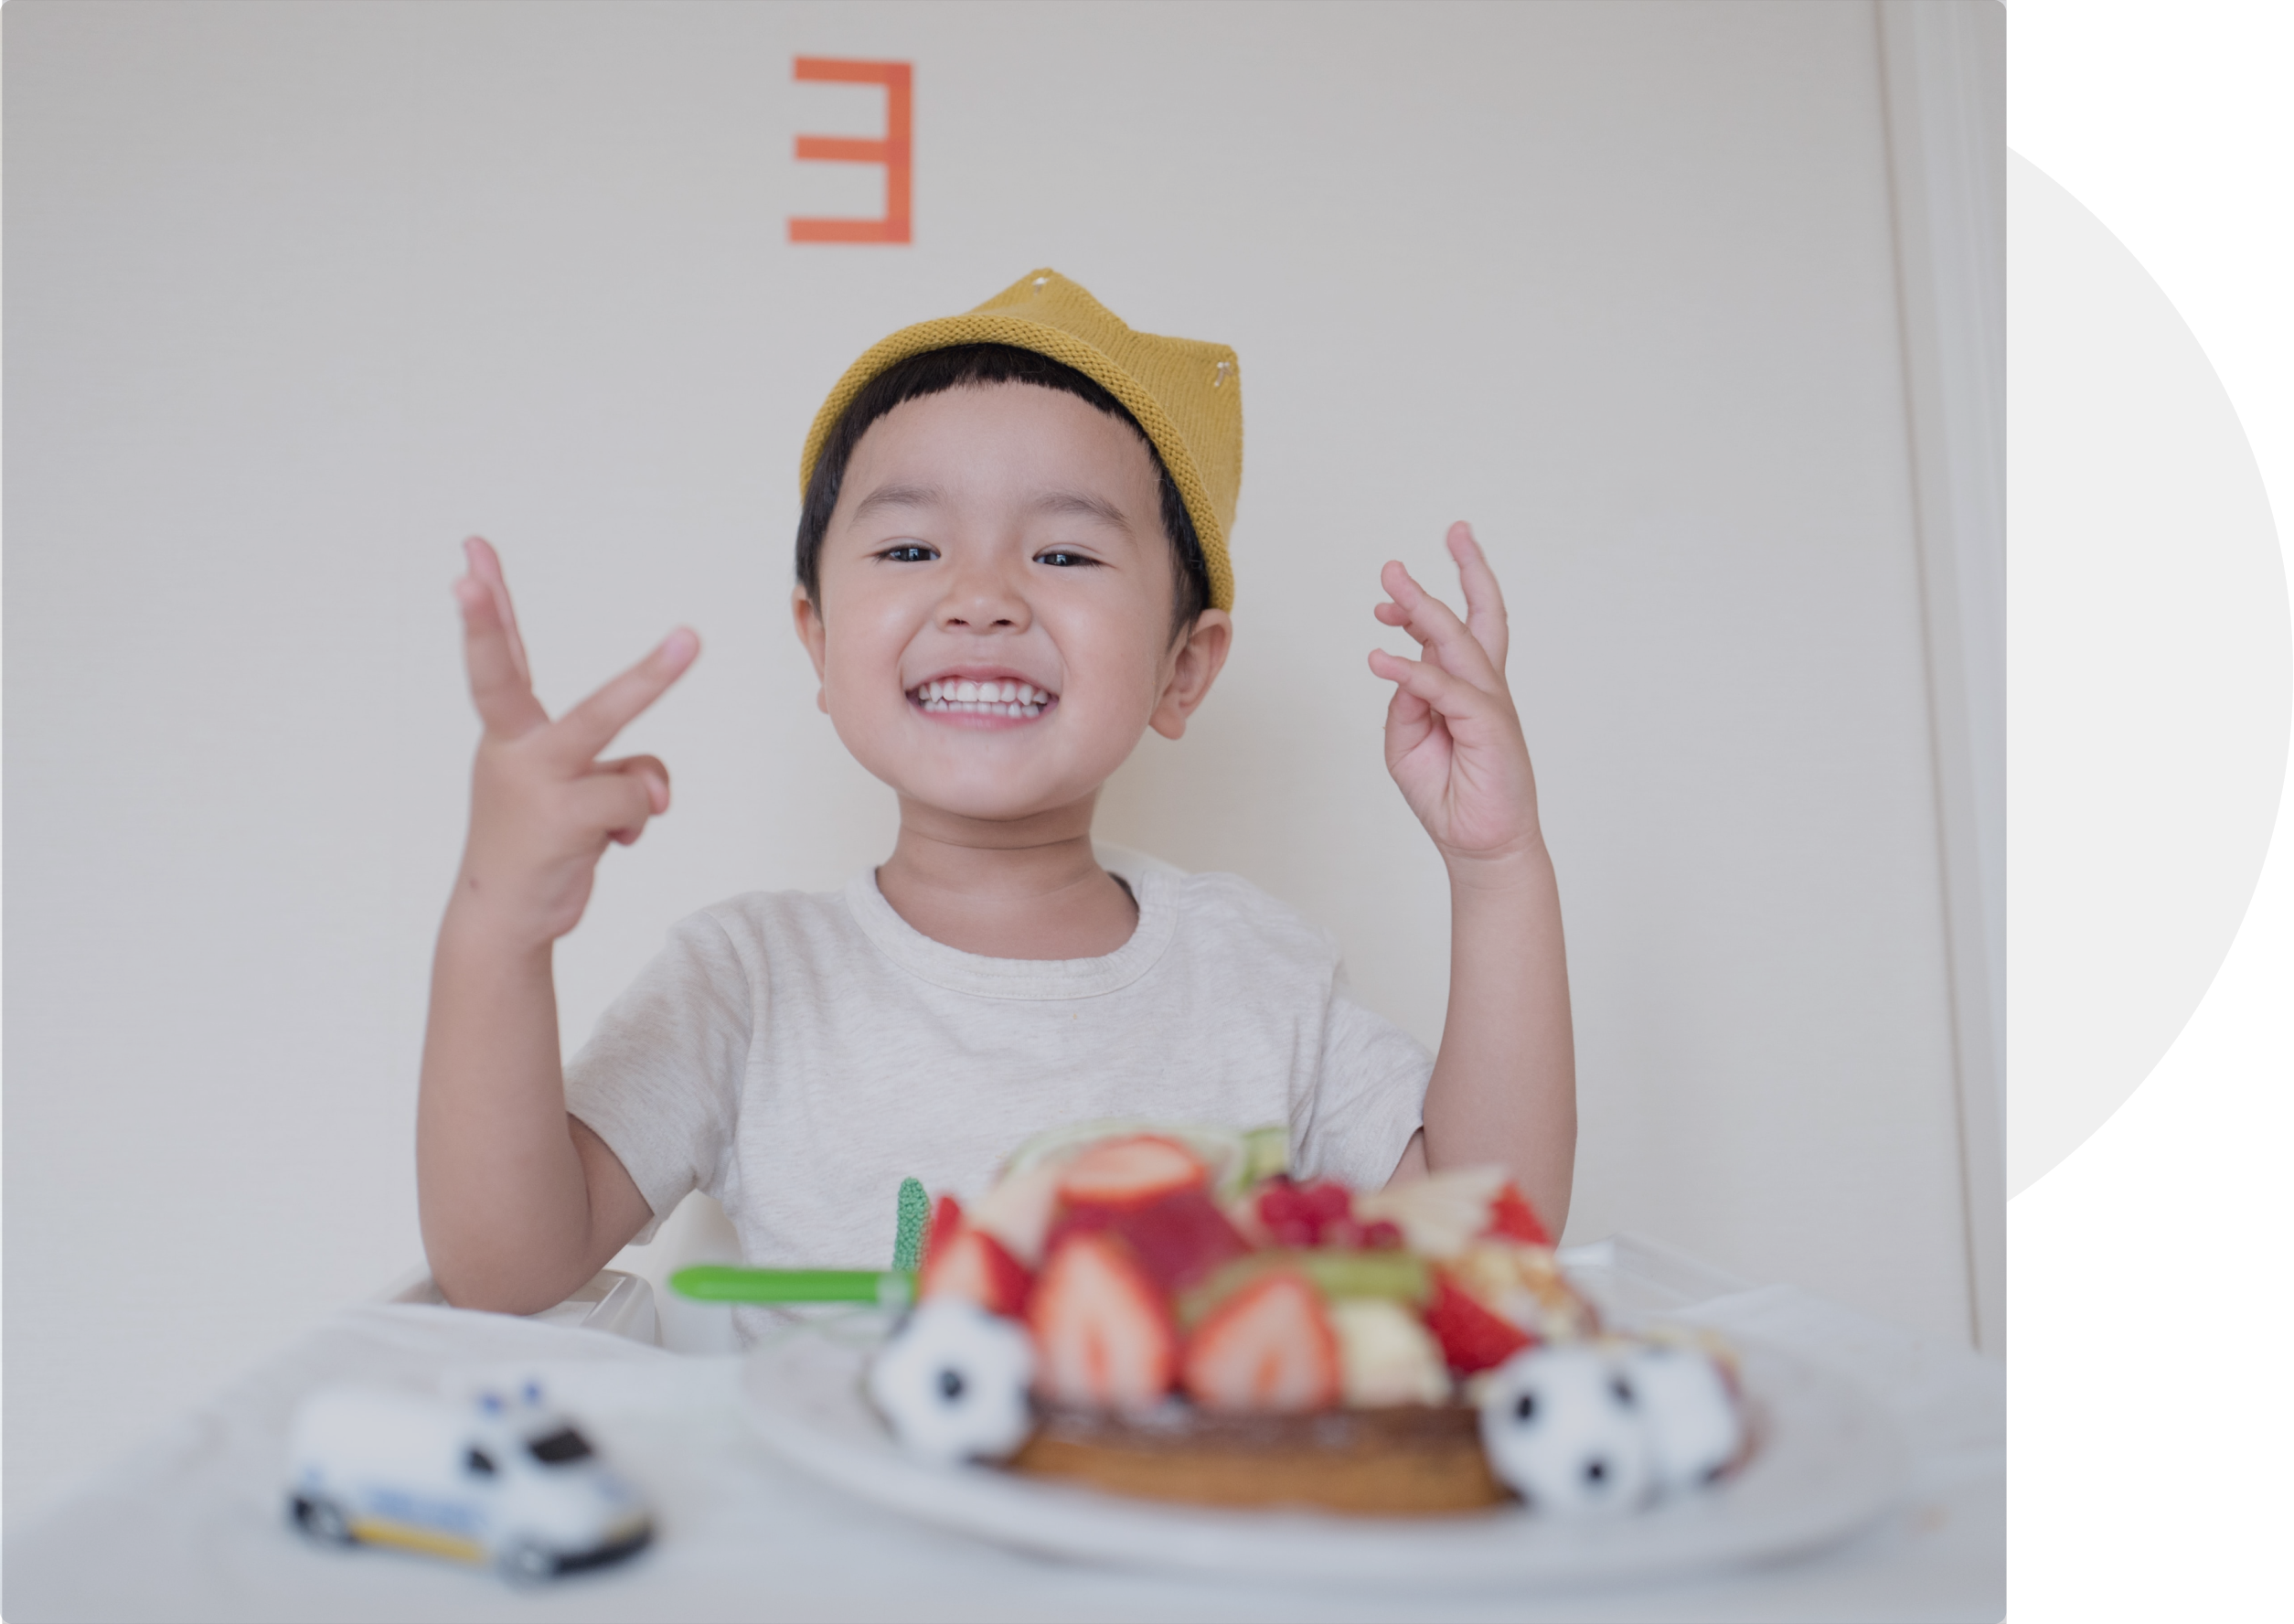 Kid protected by insurance smiling with cake